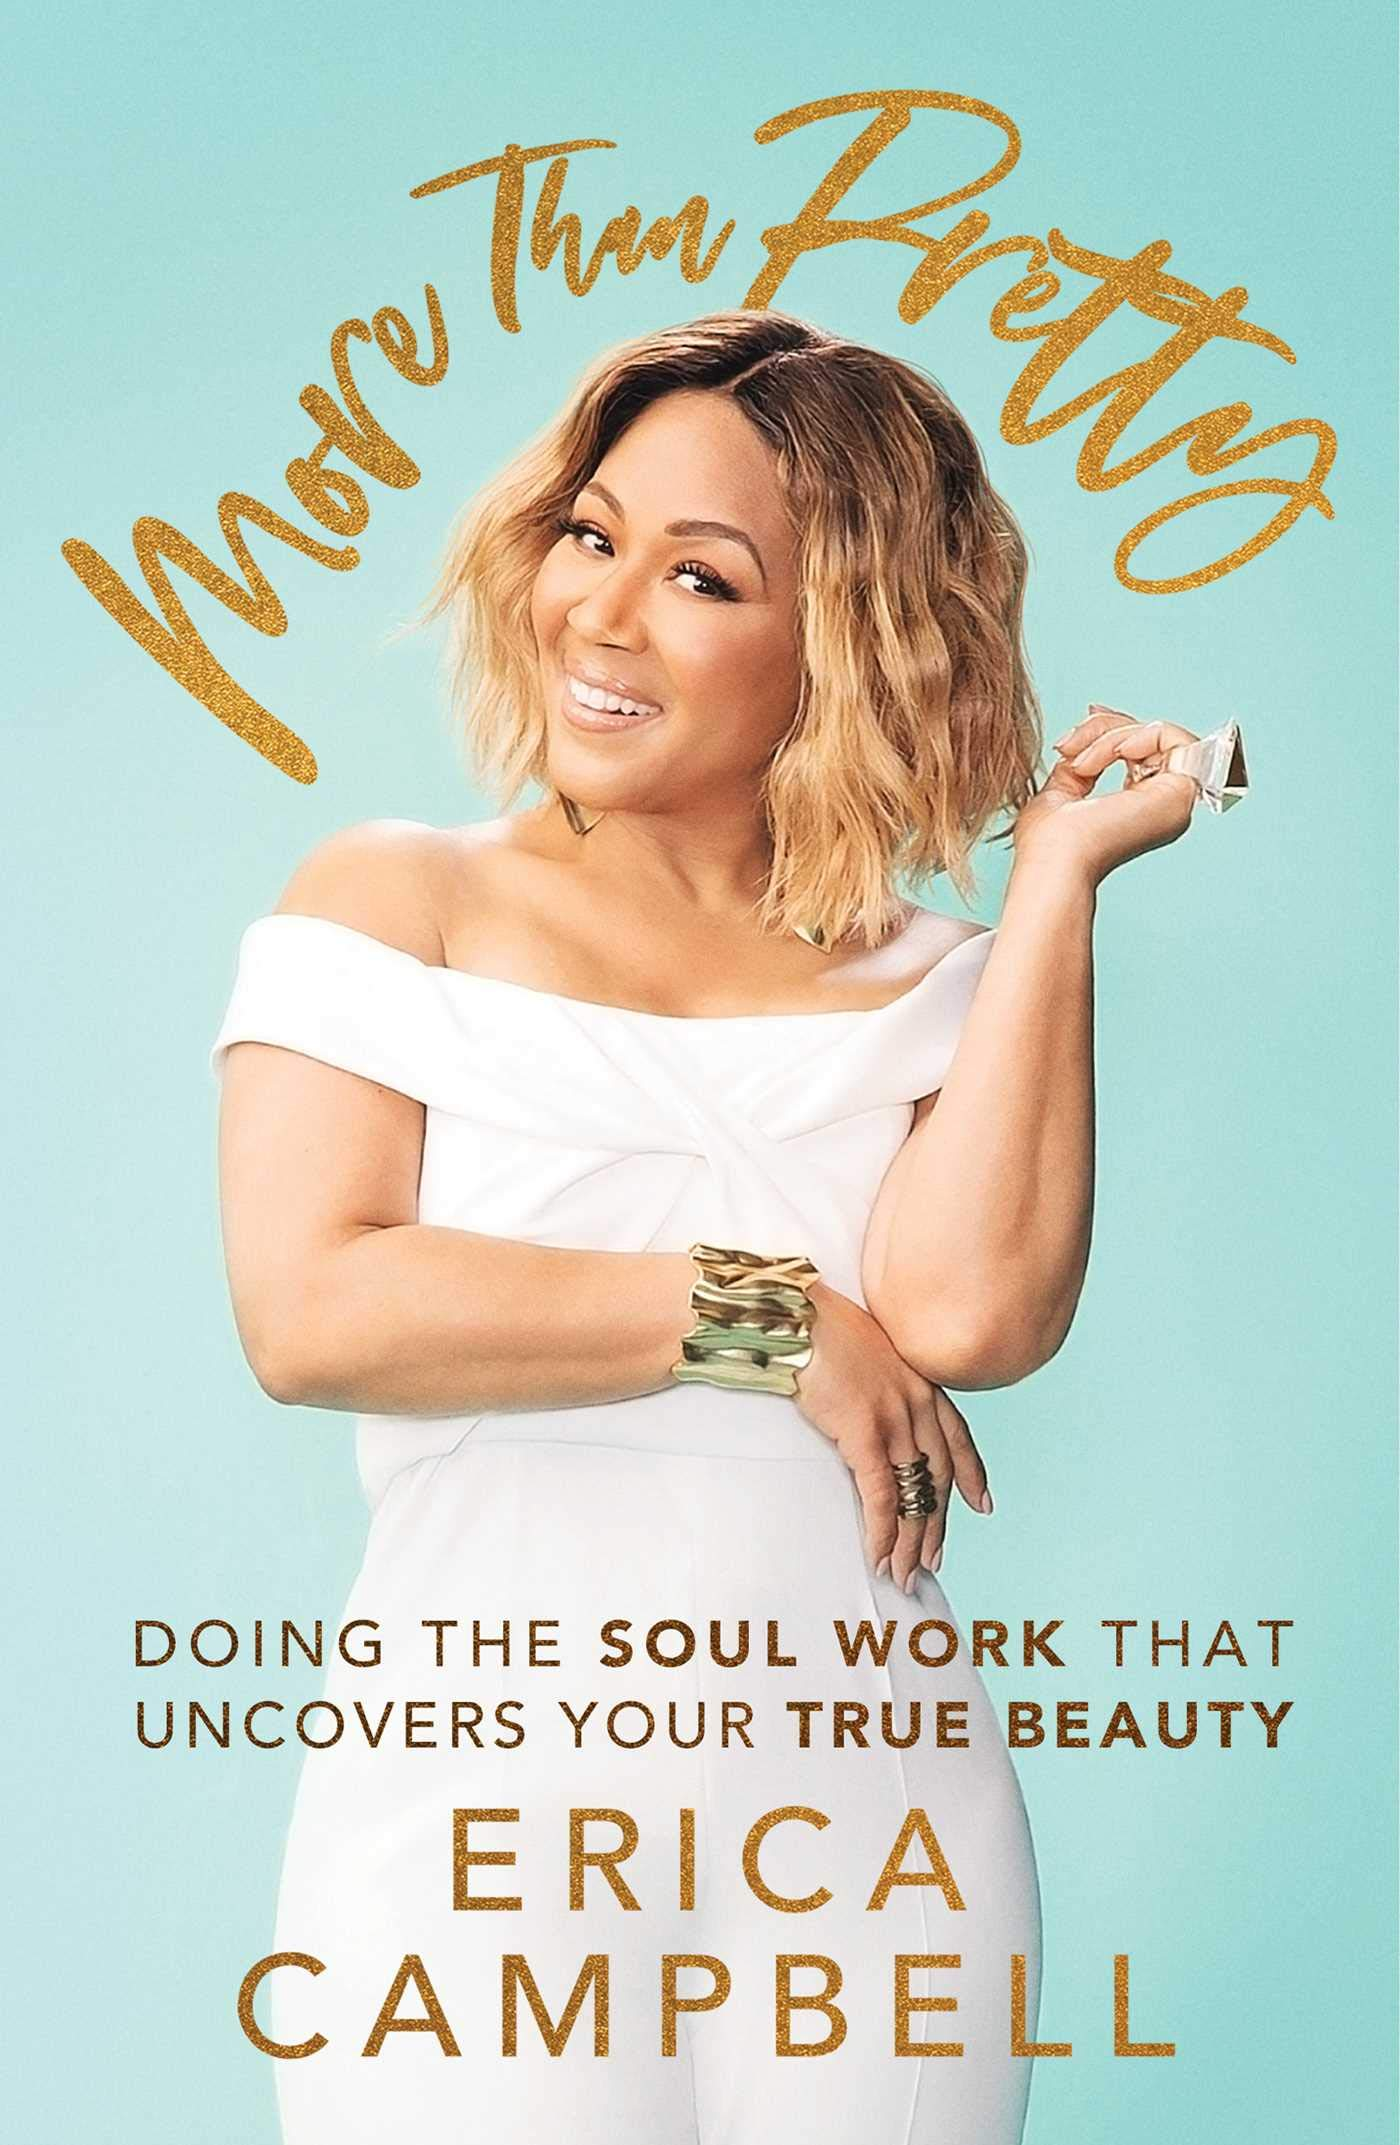 Erica Campbell new book More Than Pretty